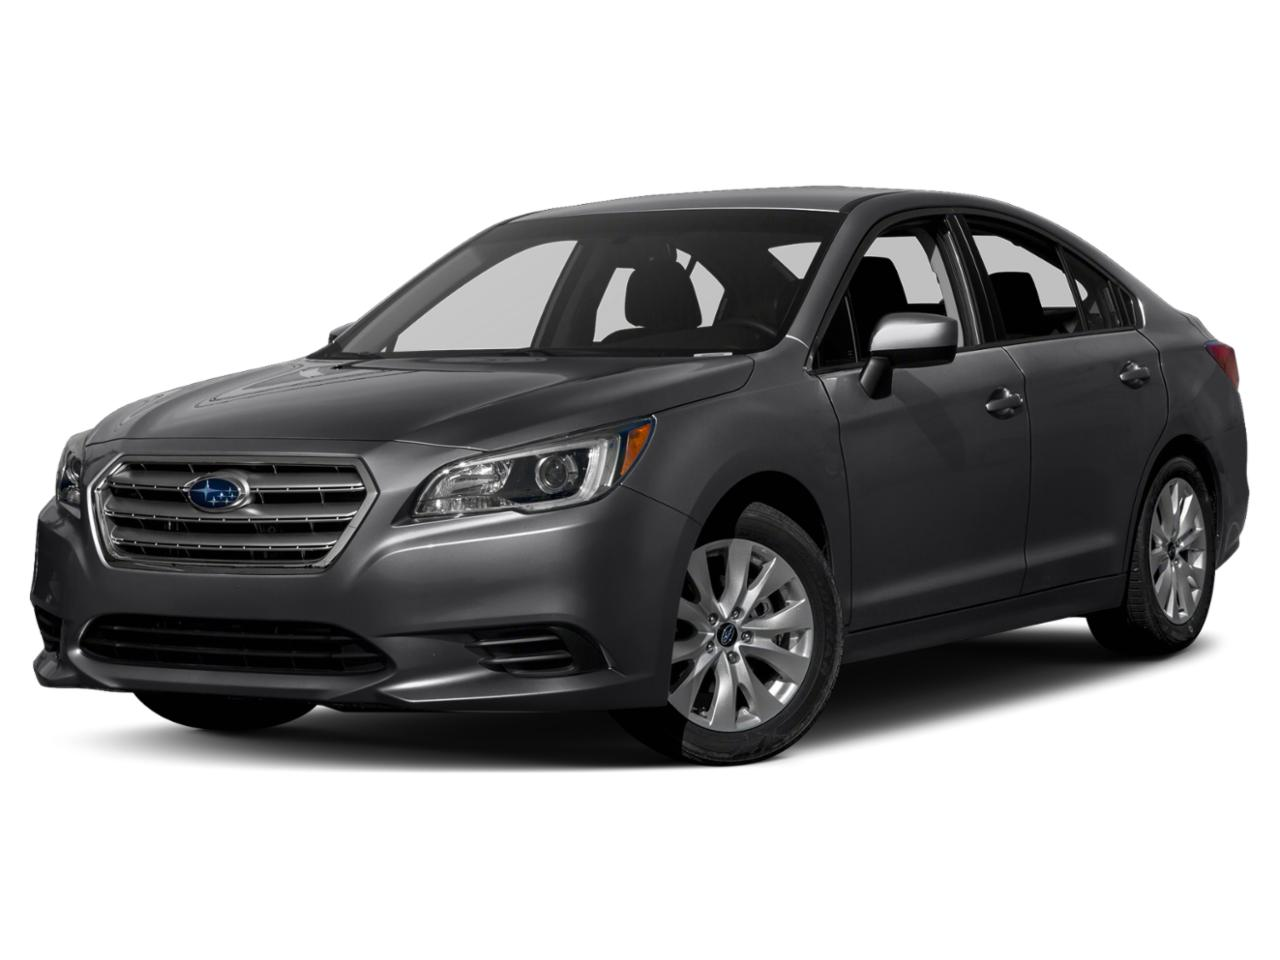 2016 Subaru Legacy Vehicle Photo in Quakertown, PA 18951